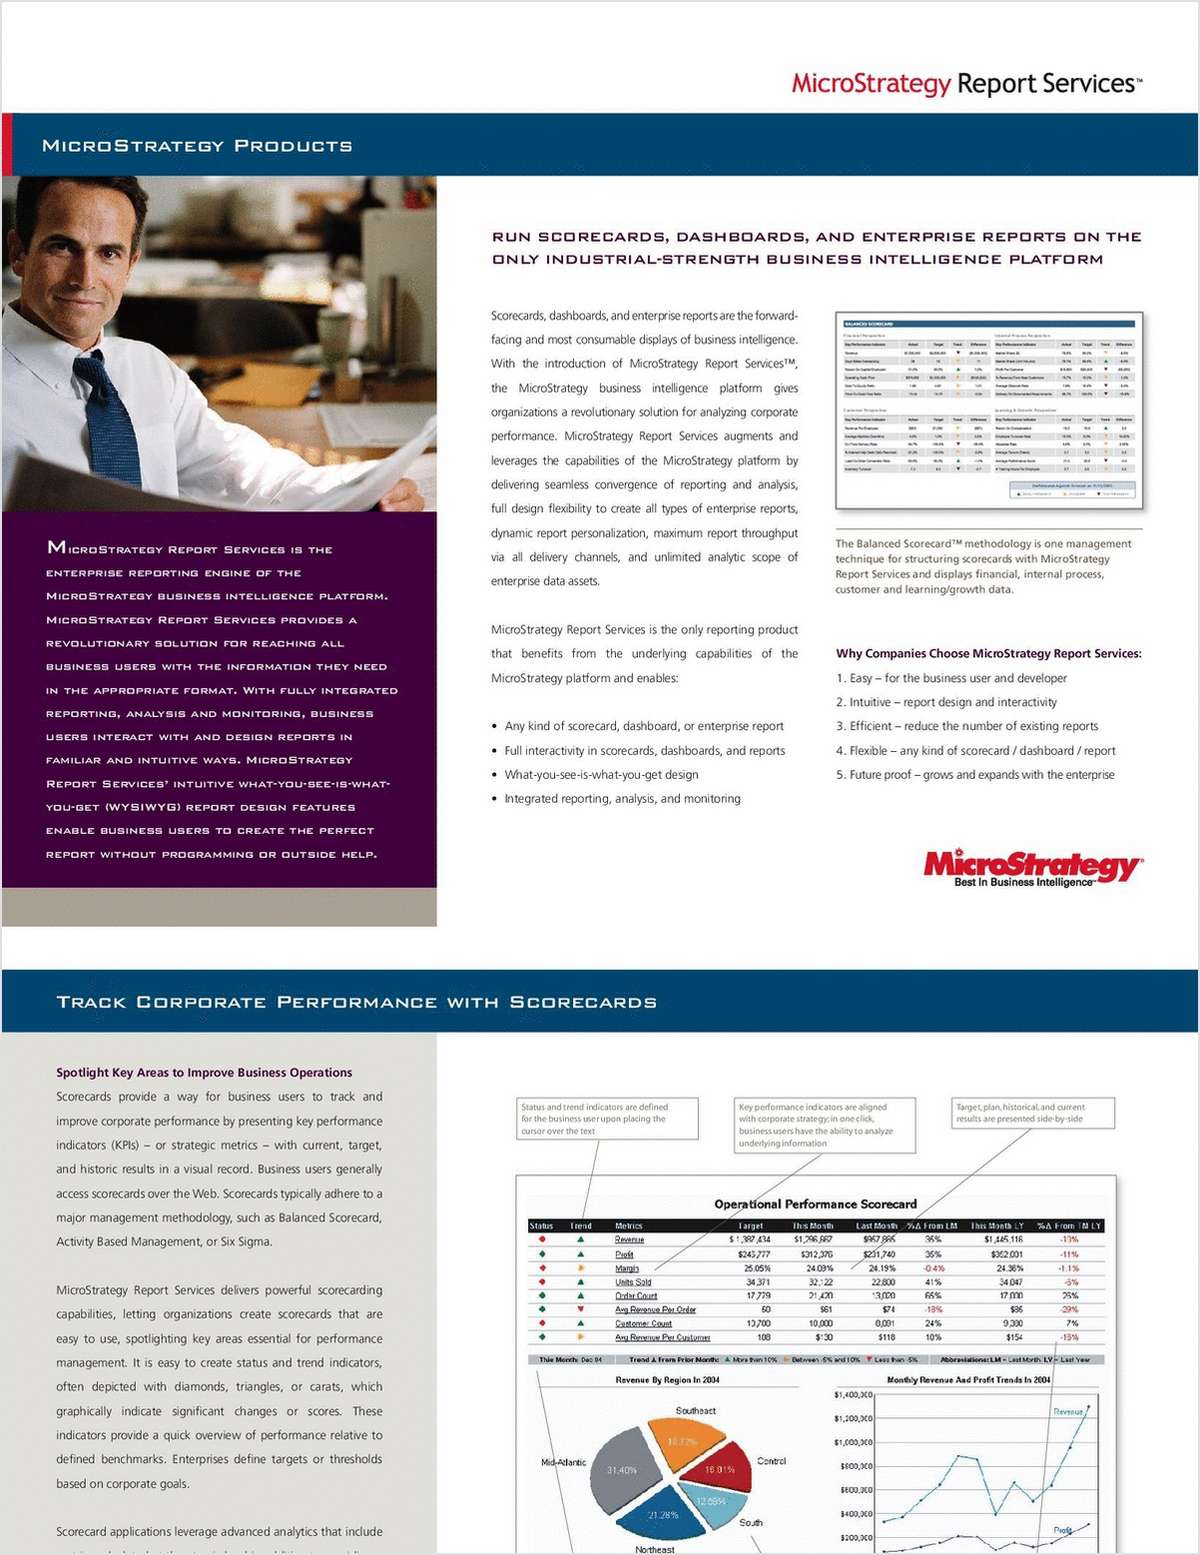 How to Build Interactive Scorecards, Dashboards and Business Reports with MicroStrategy